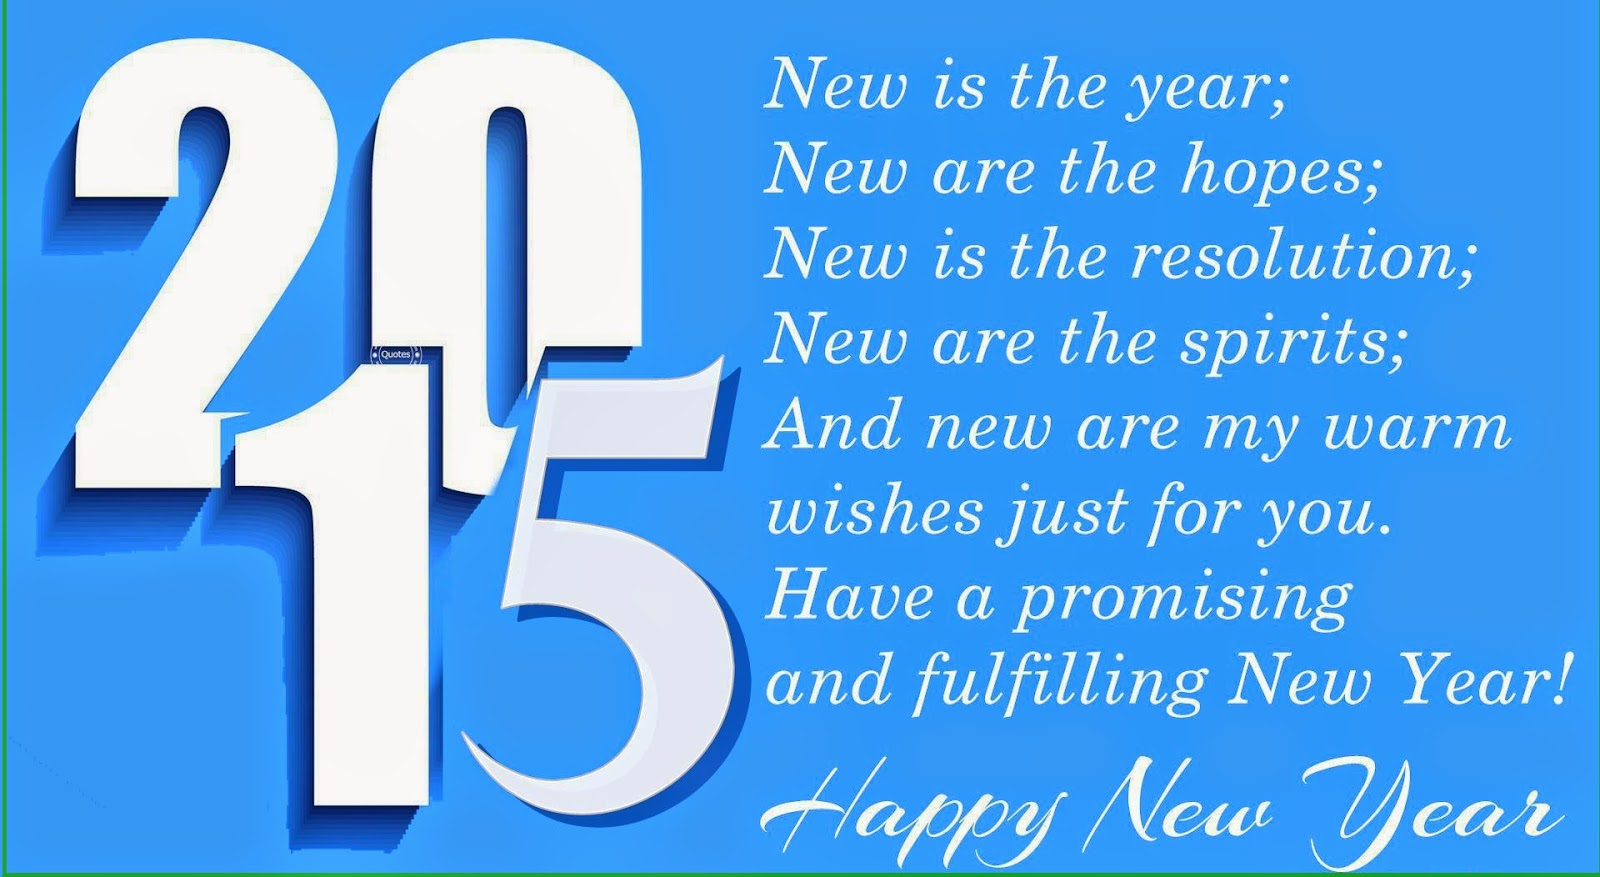 Happy new year 2015 greeting cards for free download happy new happy new year 2015 greeting cards for free download m4hsunfo